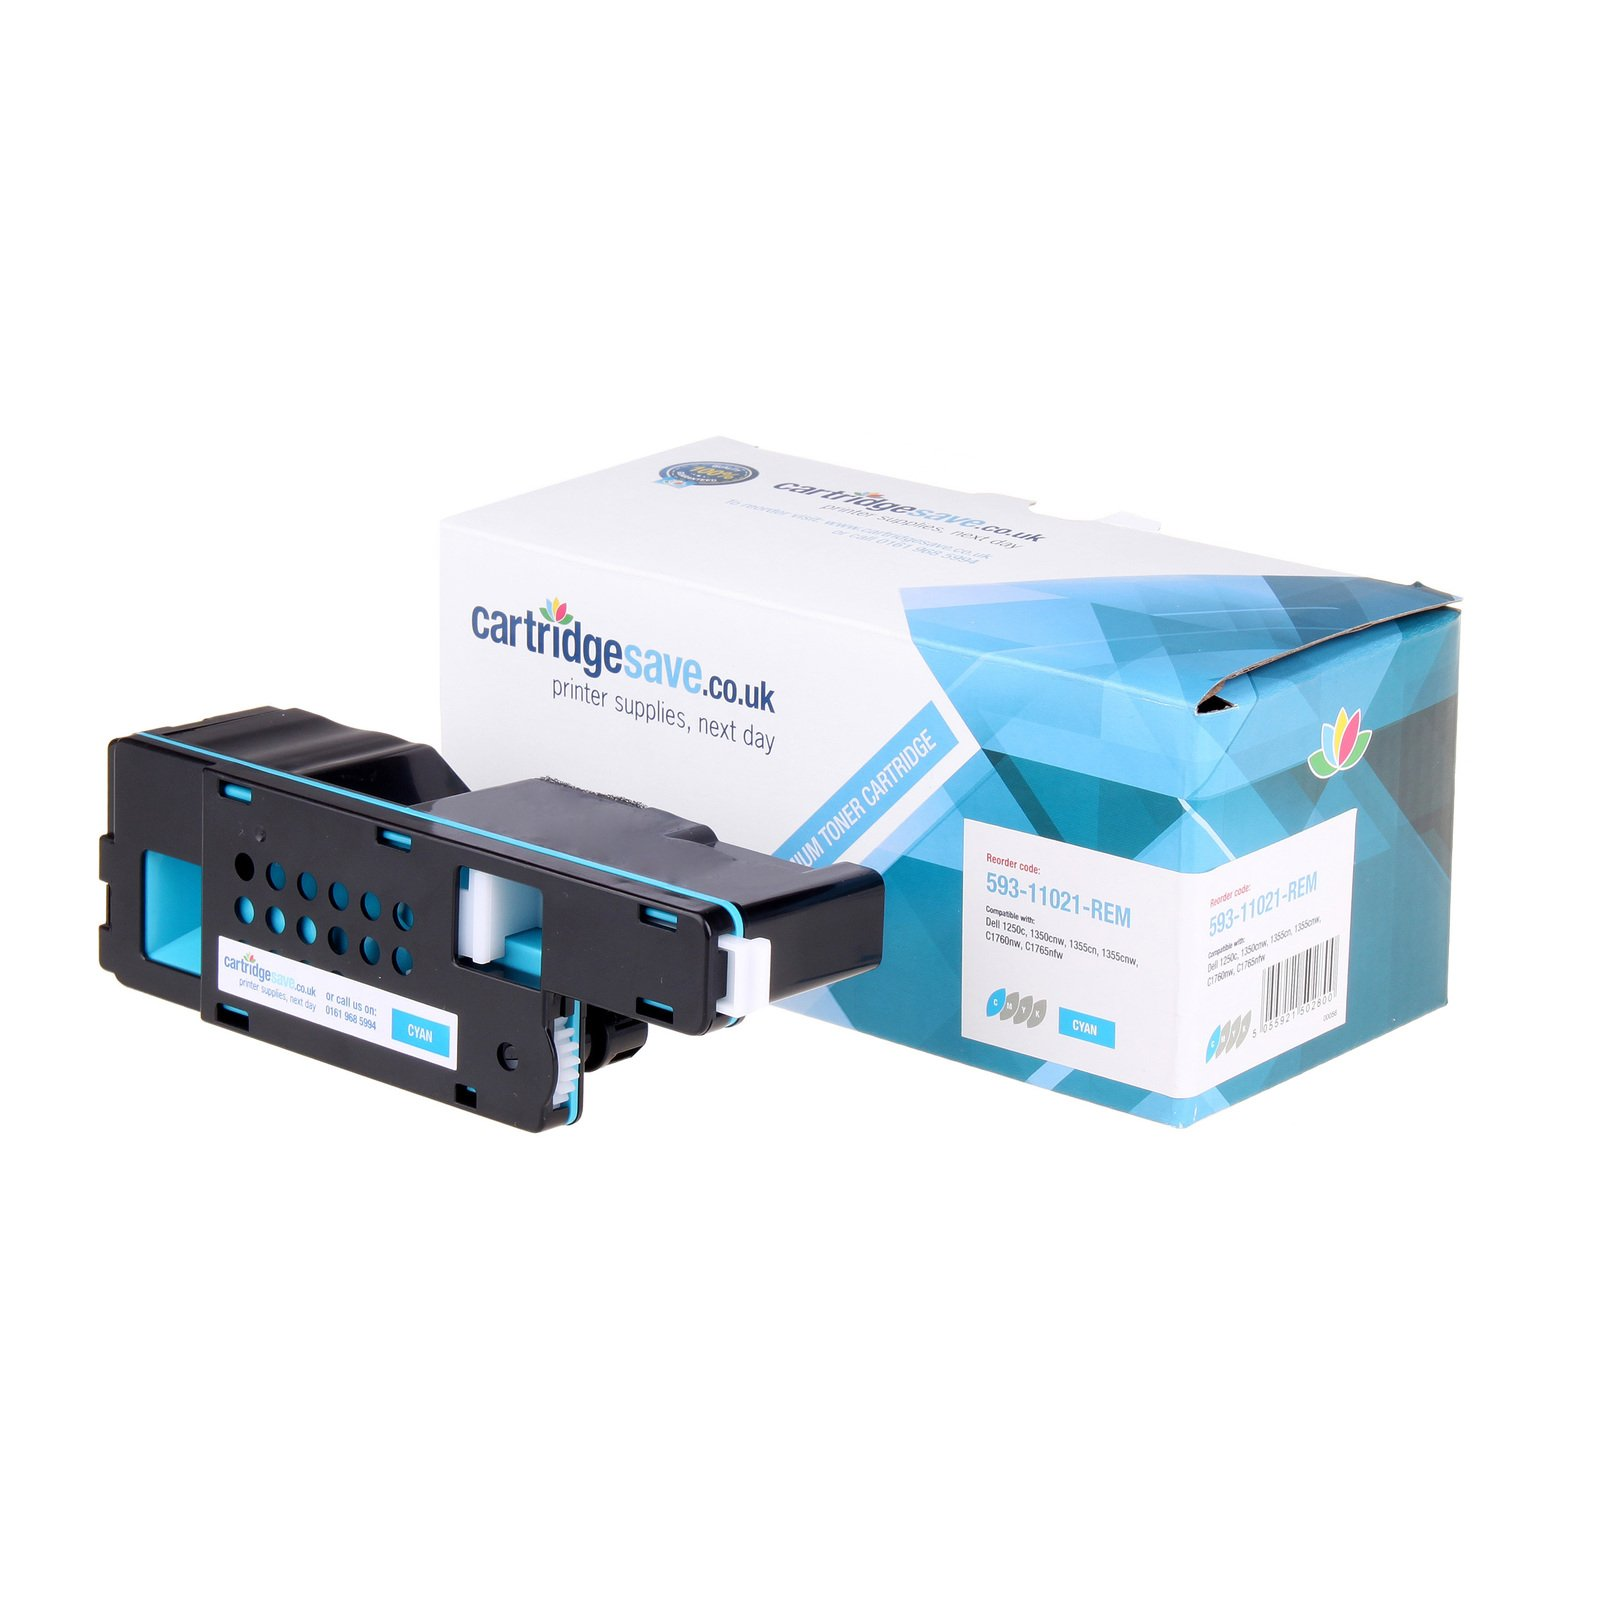 Compatible High Capacity Cyan Dell 593-11141 Toner (593-11021 Laser Printer Cartridge)